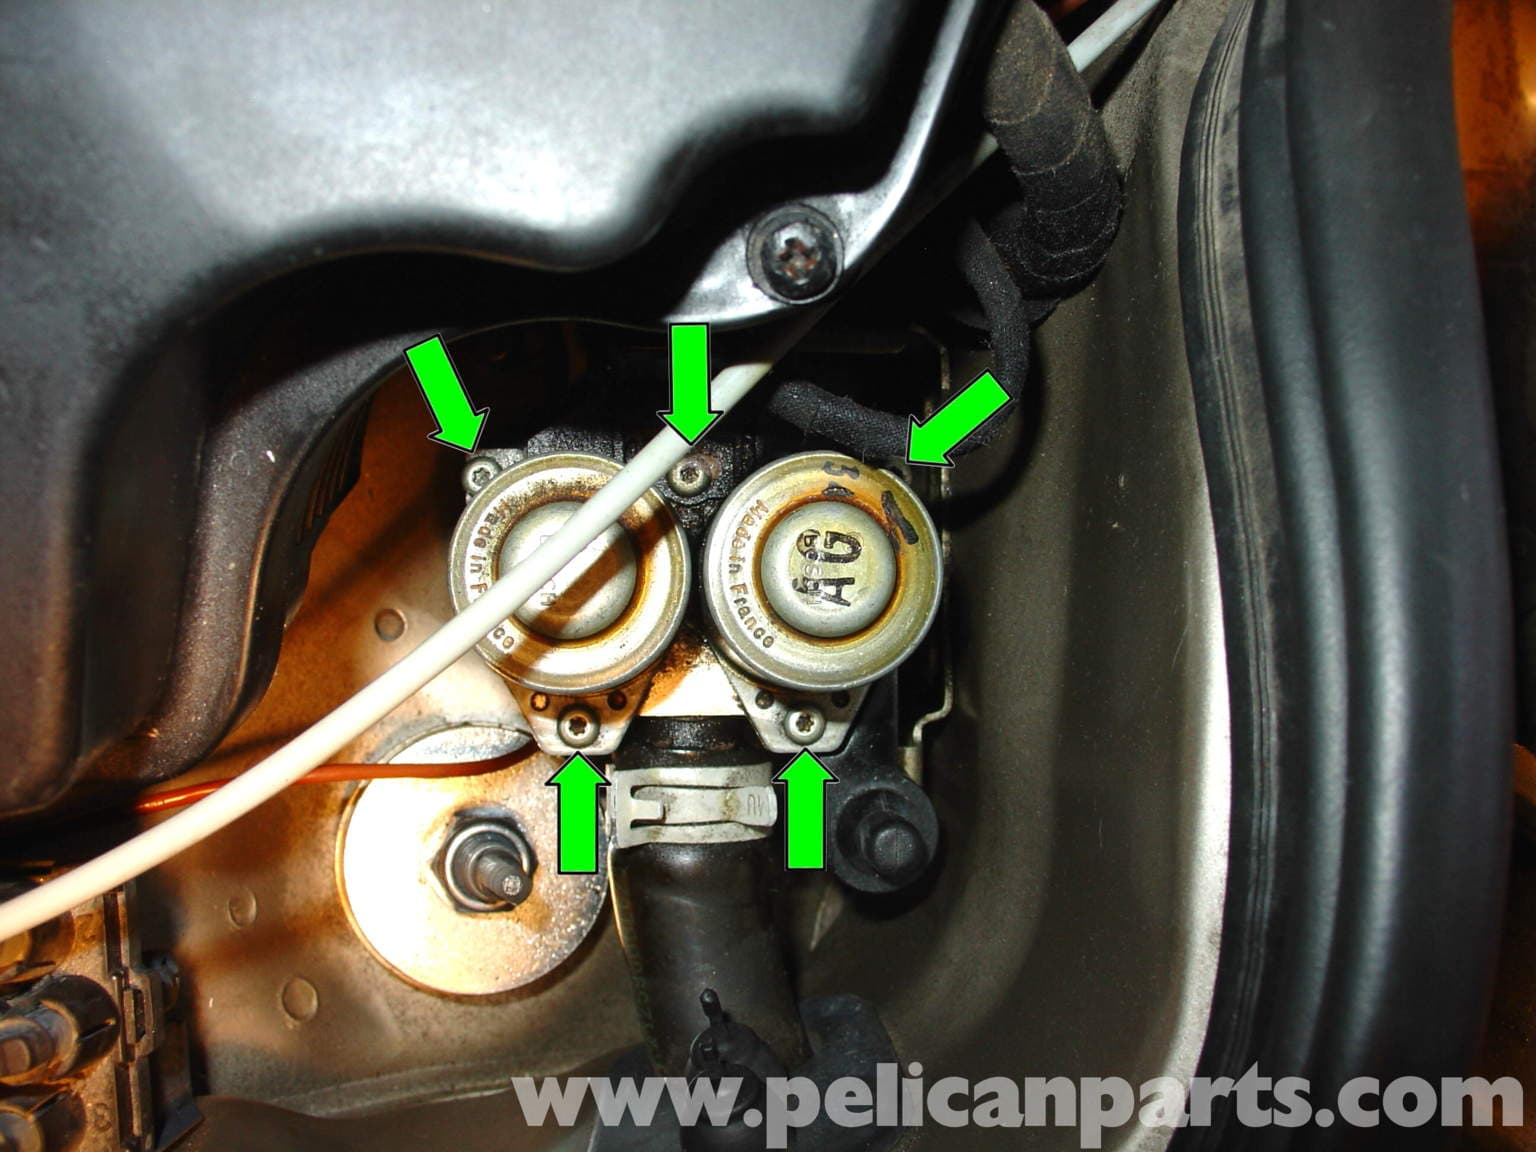 Mercedes Benz W210 Heater Control Valve Disassembly And